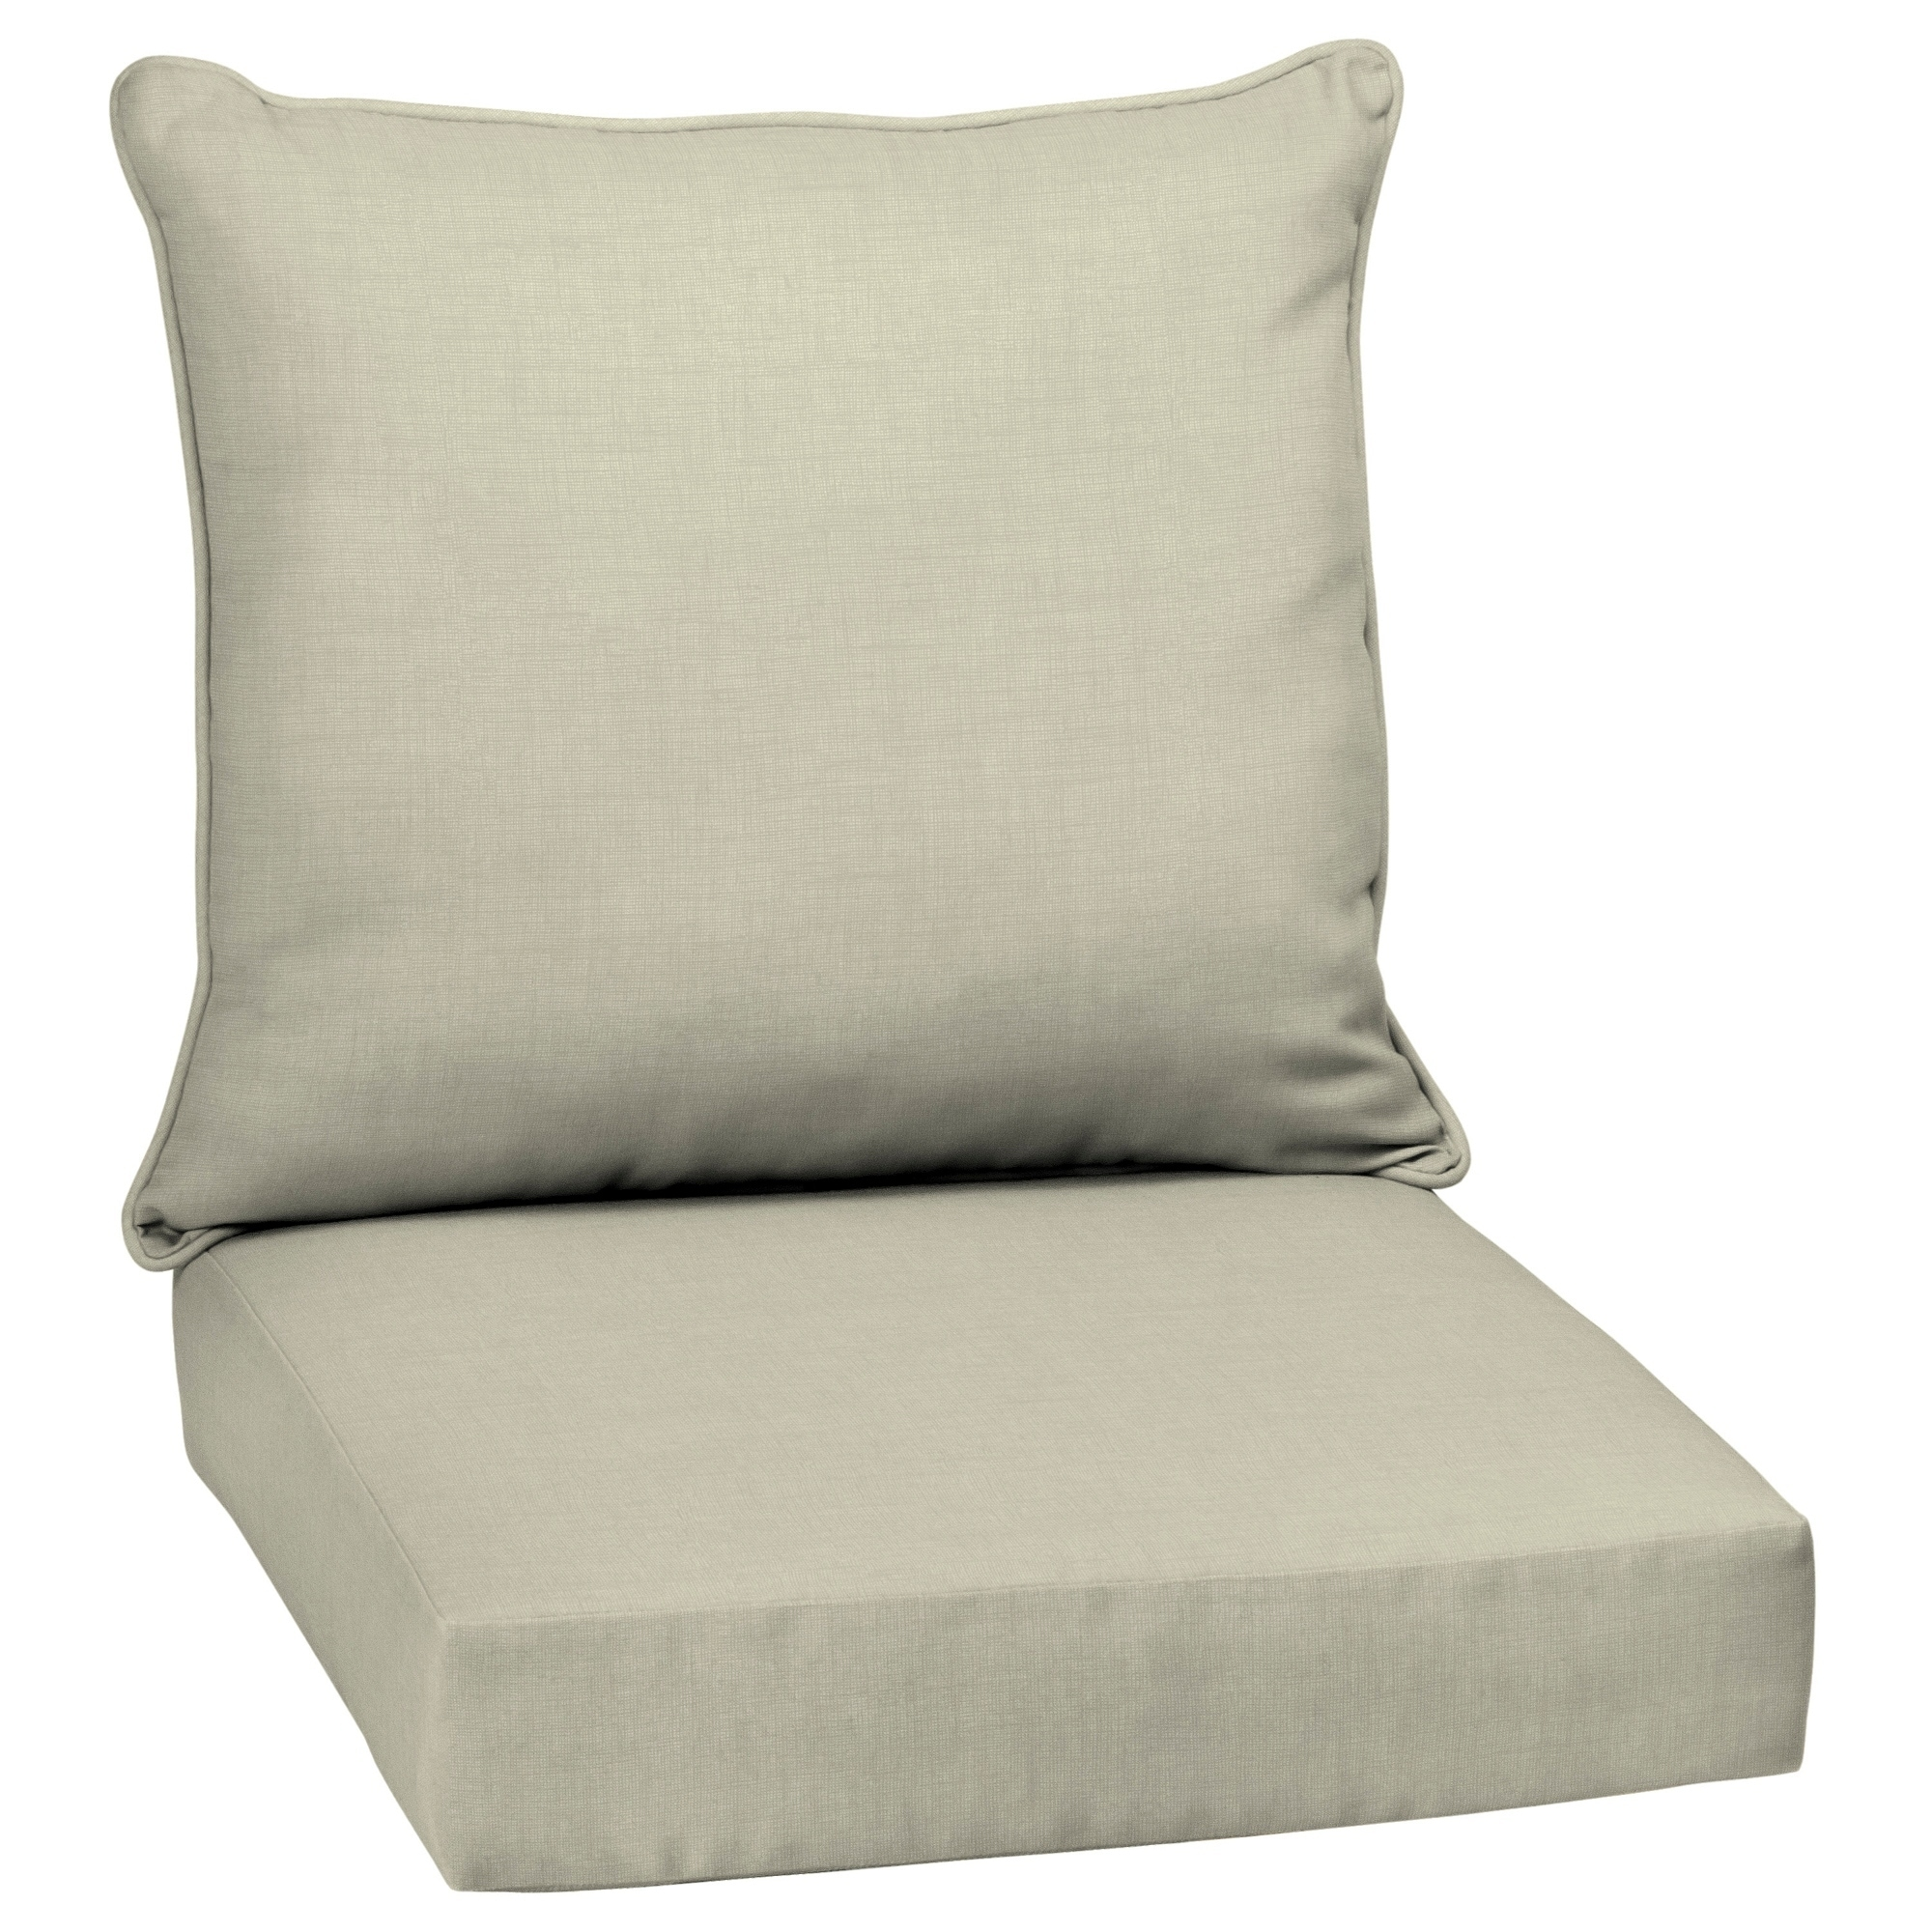 Deck Chair Cushions Buy Outdoor Cushions Pillows Online At Overstock Our Best